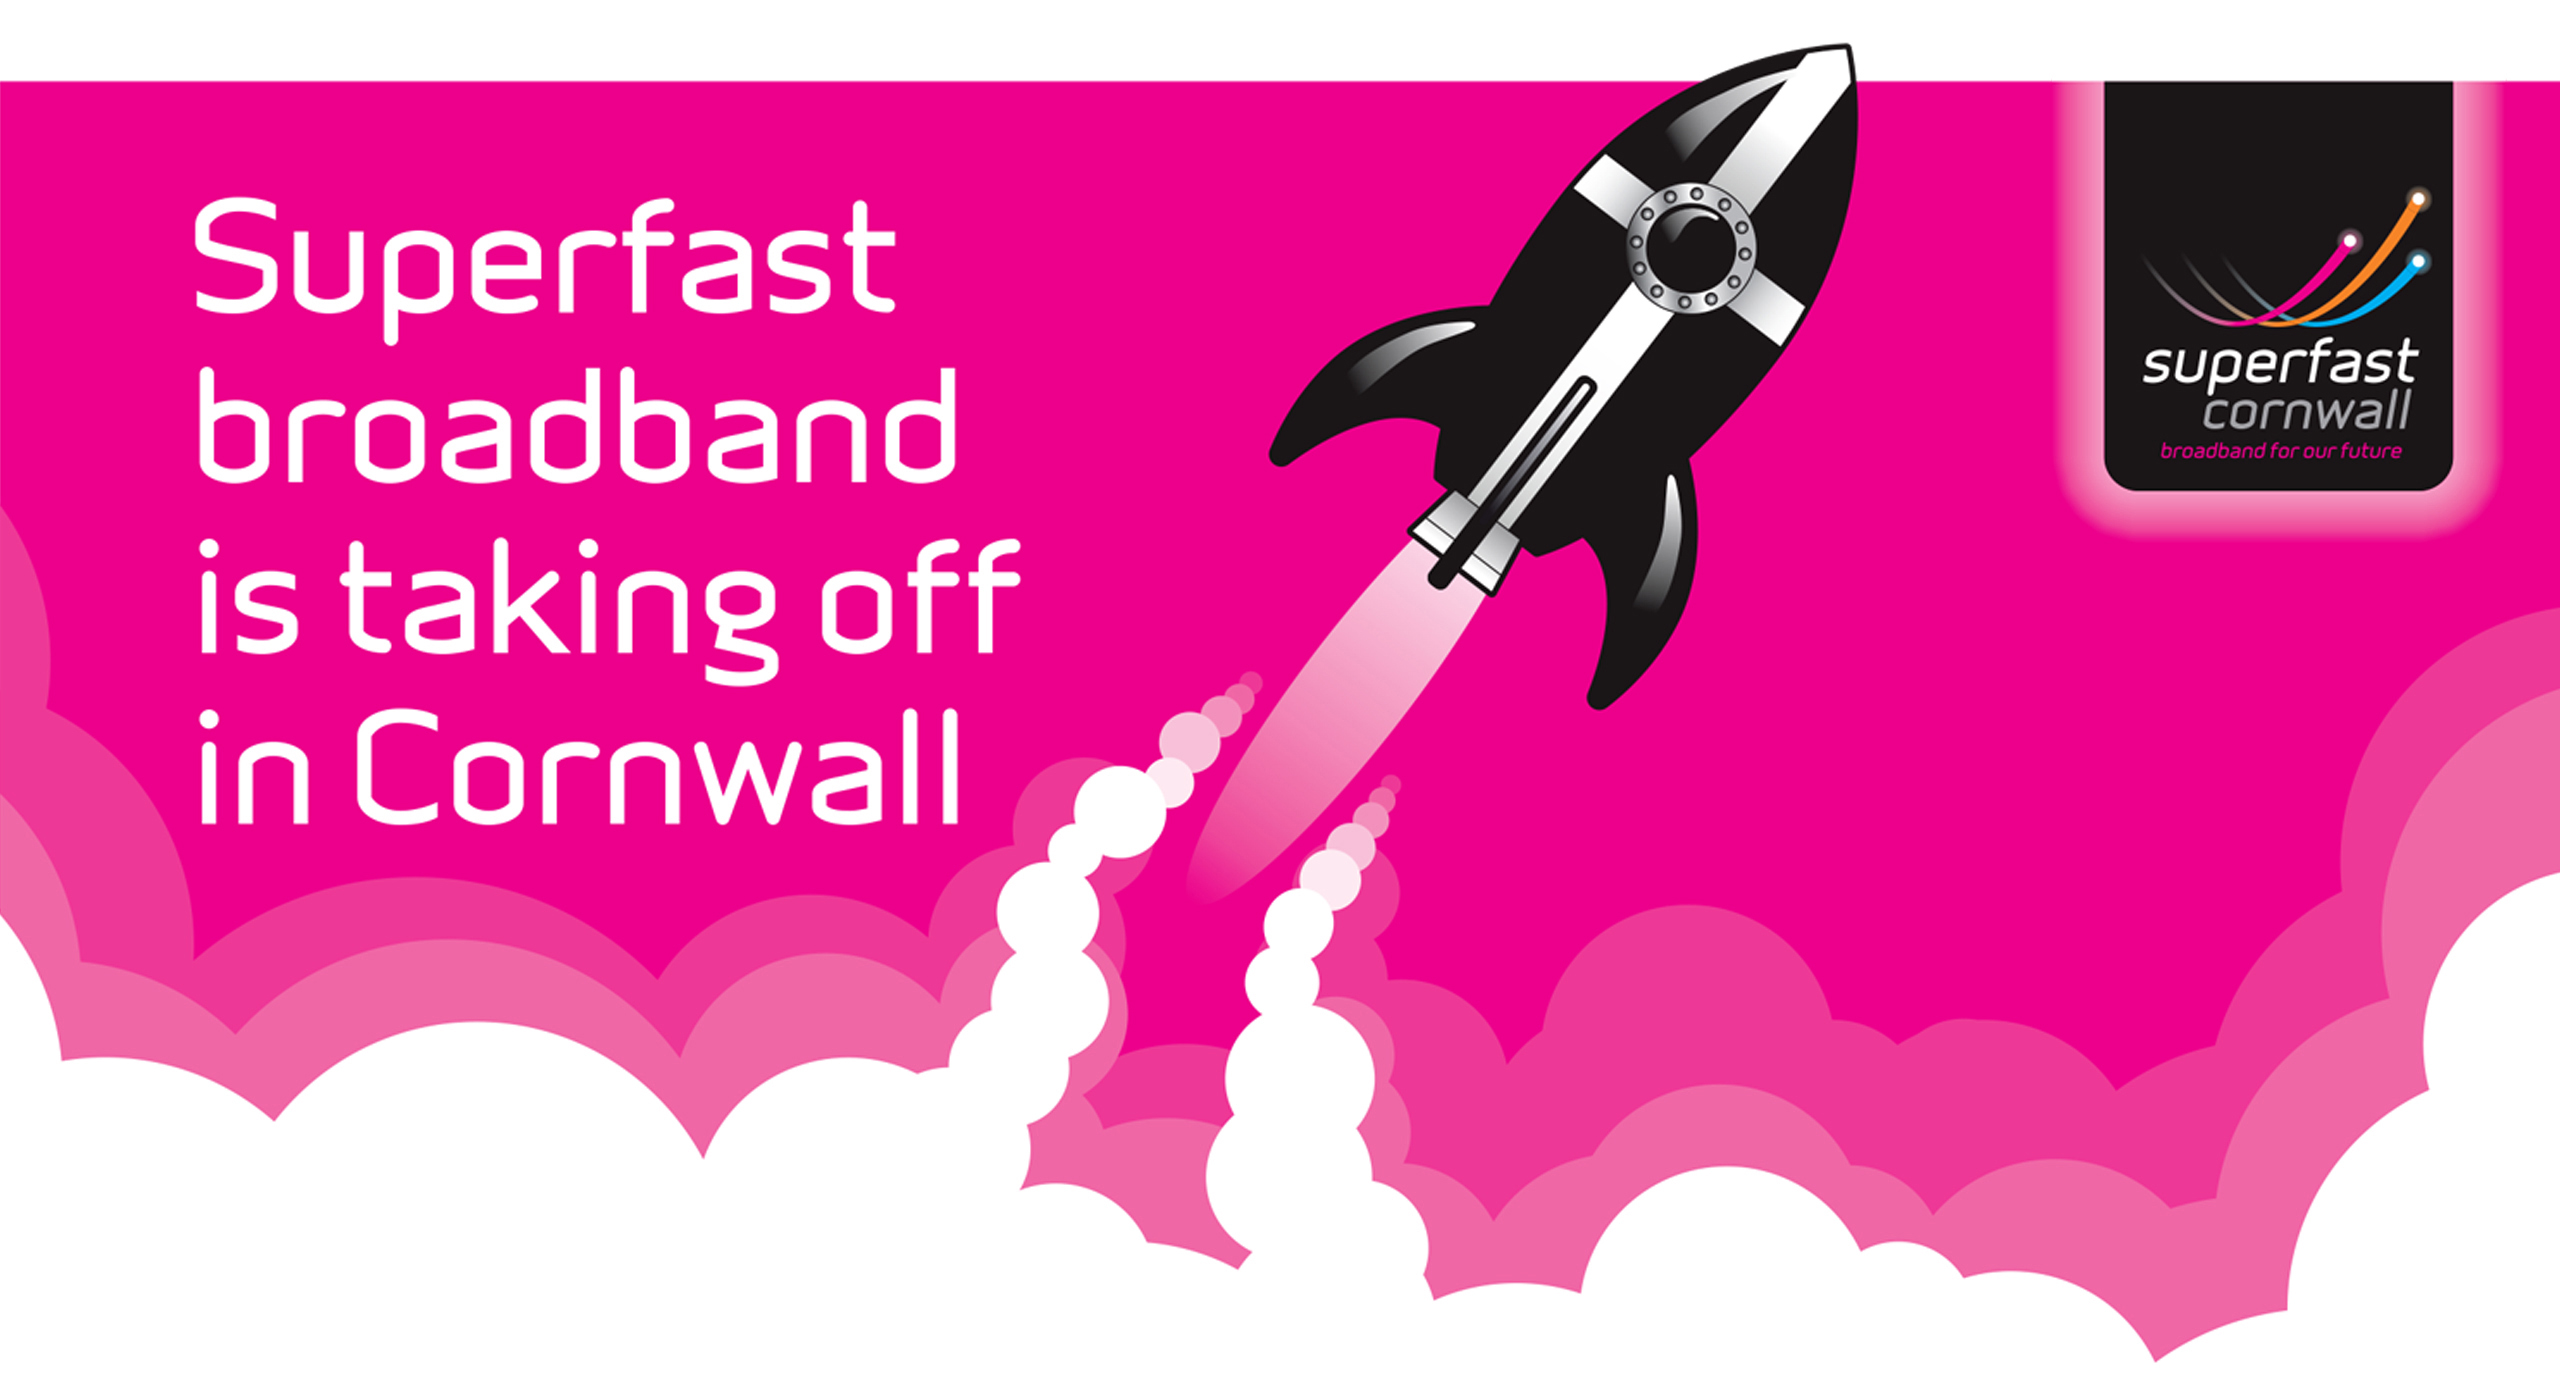 the superfast cornwall rocket graphic and branding identity used across the superfast cornwall campaign